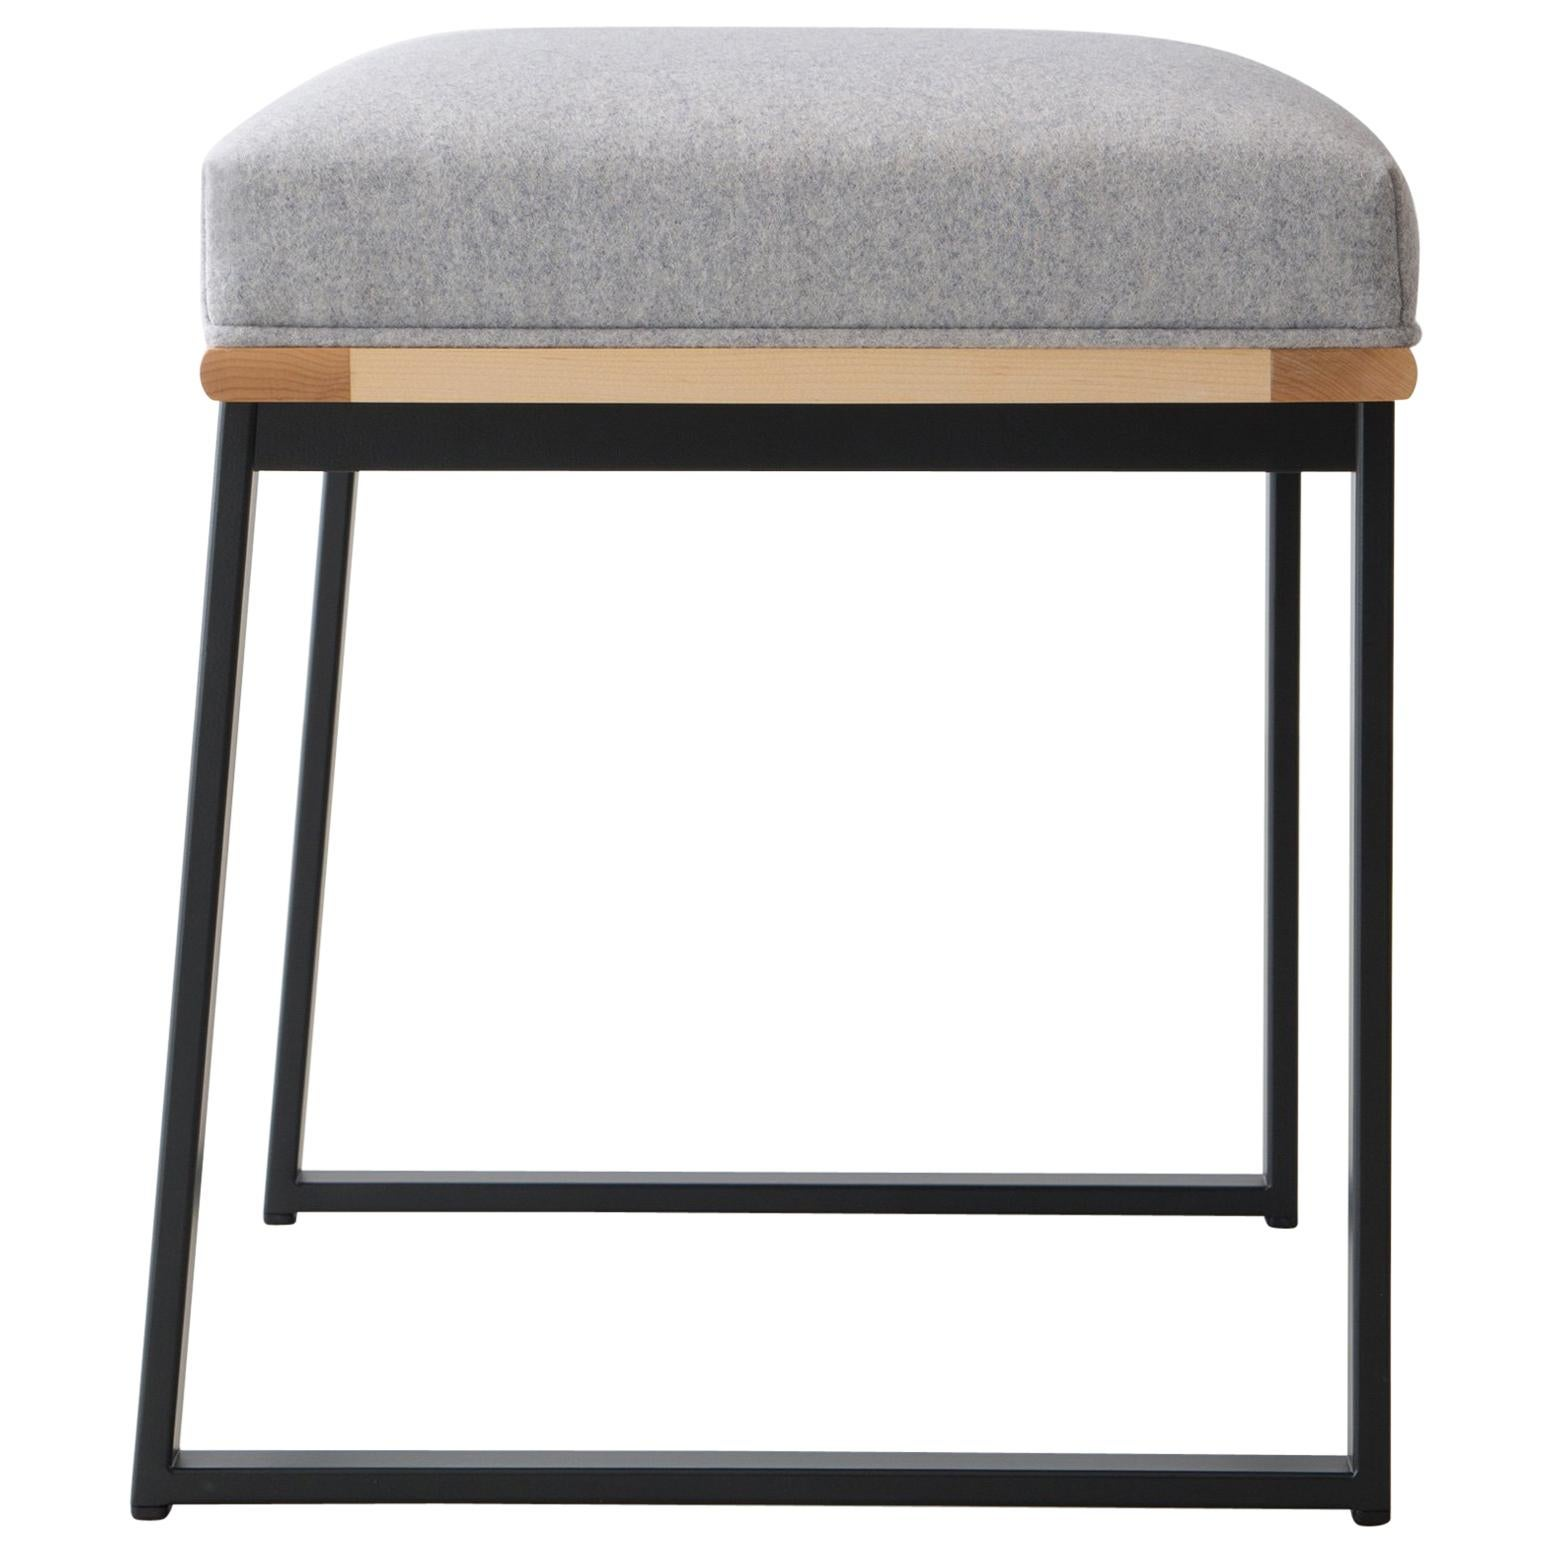 DGD Dining Stool, Upholstery in Felt, Bouclé or COM, Made in USA